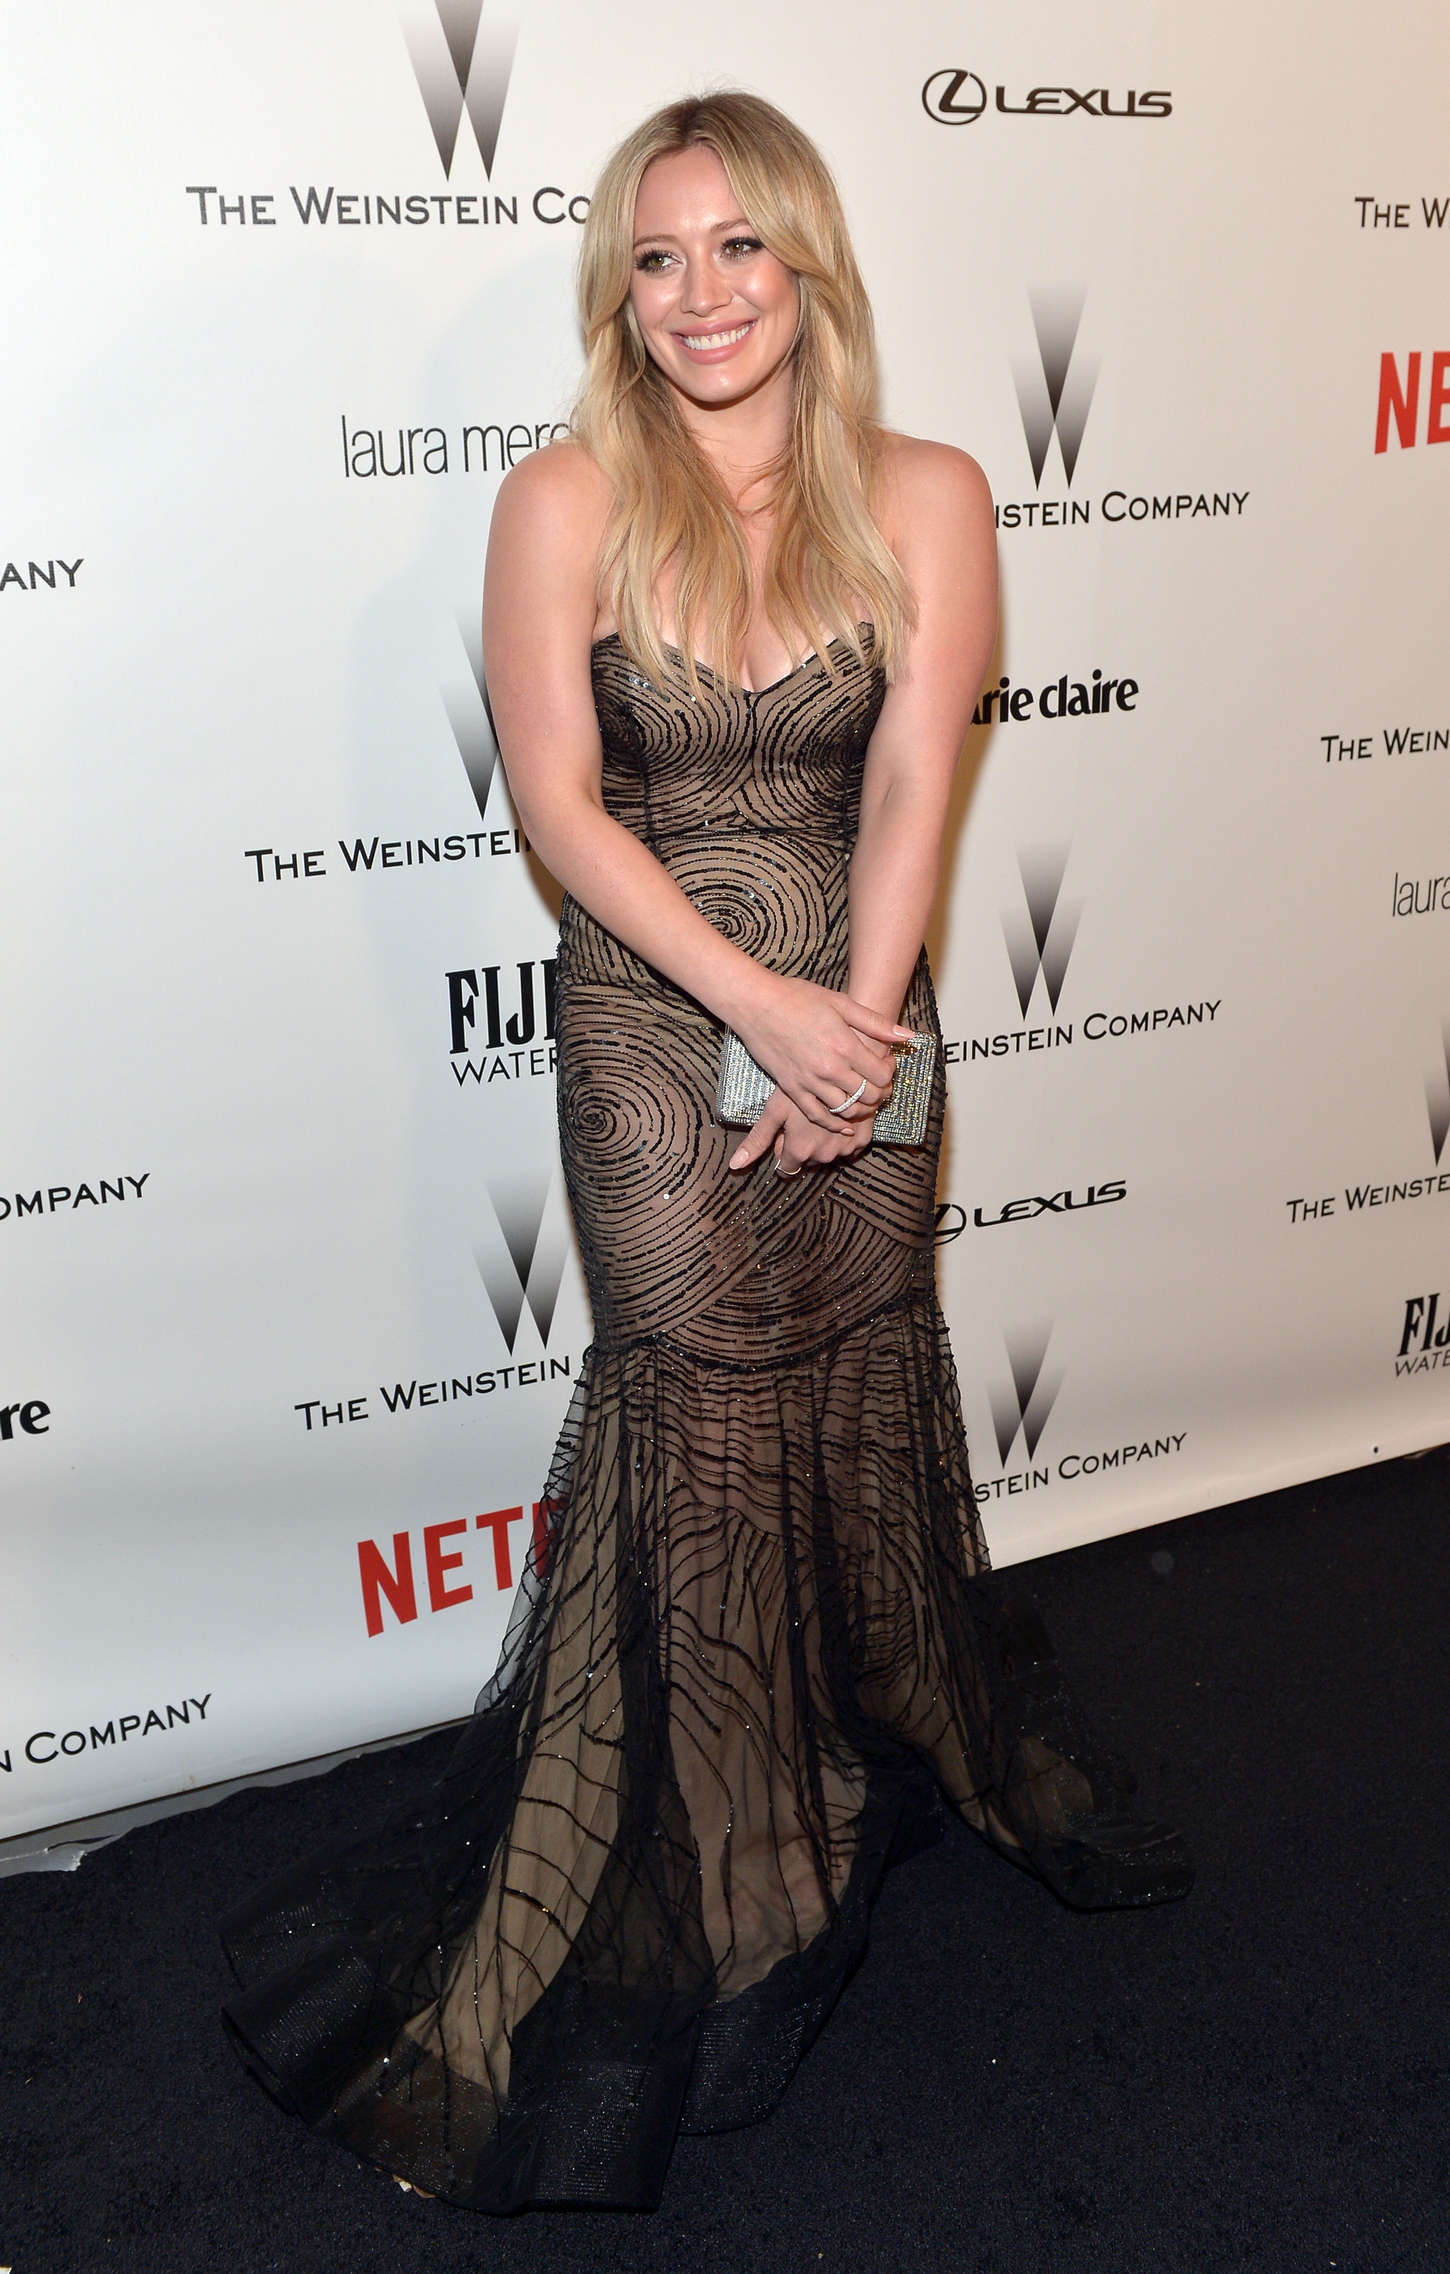 Hilary Duff 2015 : Hilary Duff: 2015 The Weinstein Company and Netflixs Golden Globes Party -05